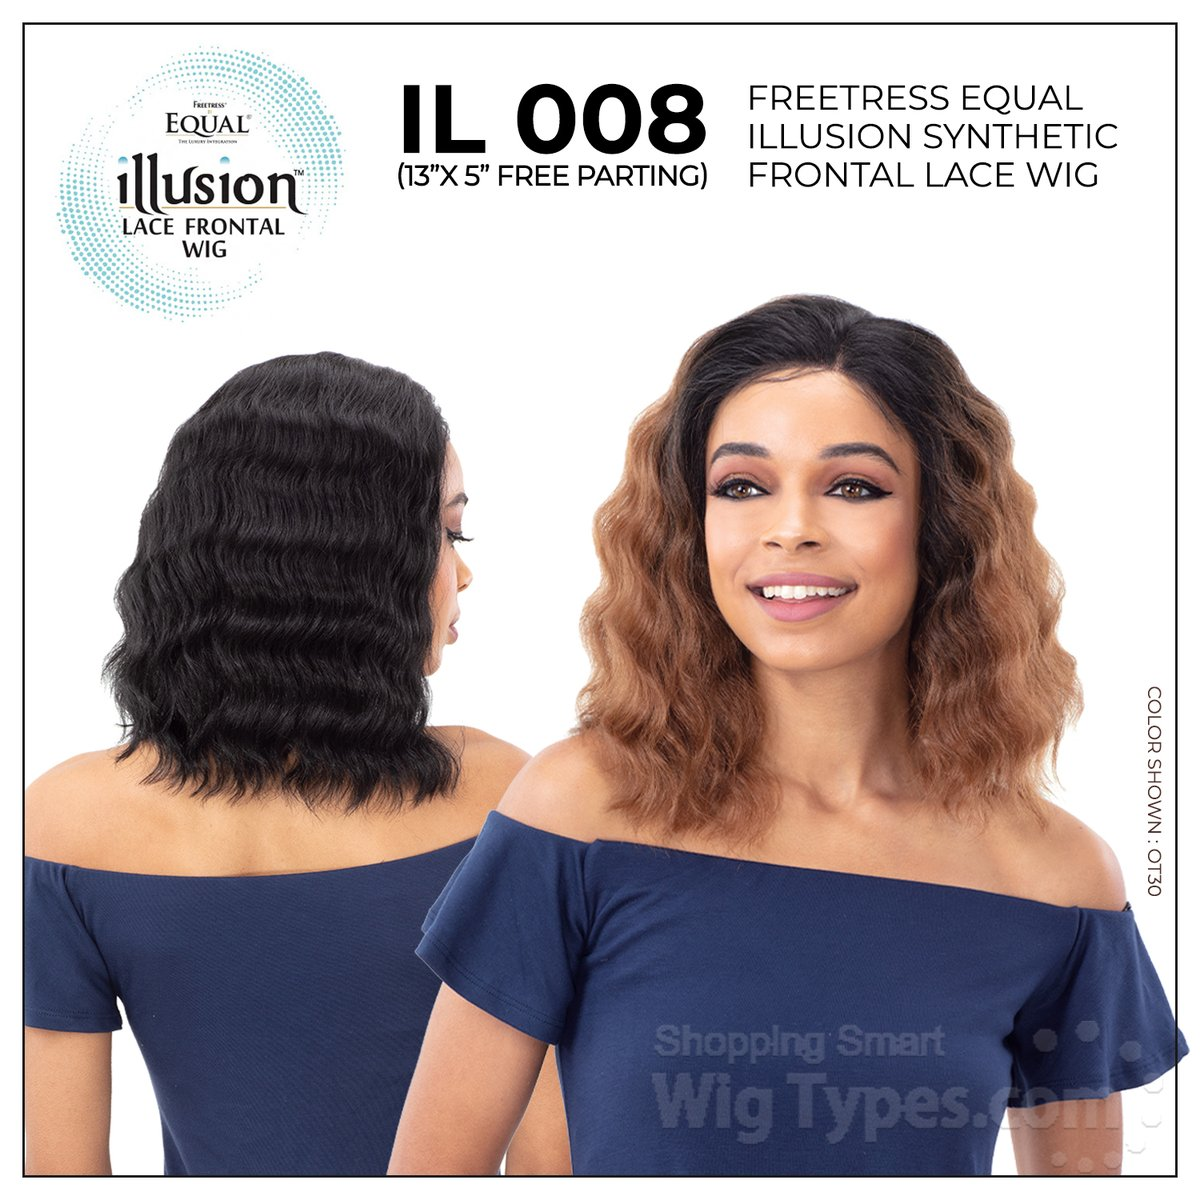 Freetress Equal Illusion Synthetic Frontal Lace Wig - IL 008 (13x5 free parting) (https://soo.nr/TW6h)    . . . . #wigtypes #wigtypesdotcom #protectivestyles #blackgirlhair #blackgirlmagic #lacefrontalwig #syntheticwigs #illusionwig #freepartingwig #il008wigpic.twitter.com/tDhpfXLFys